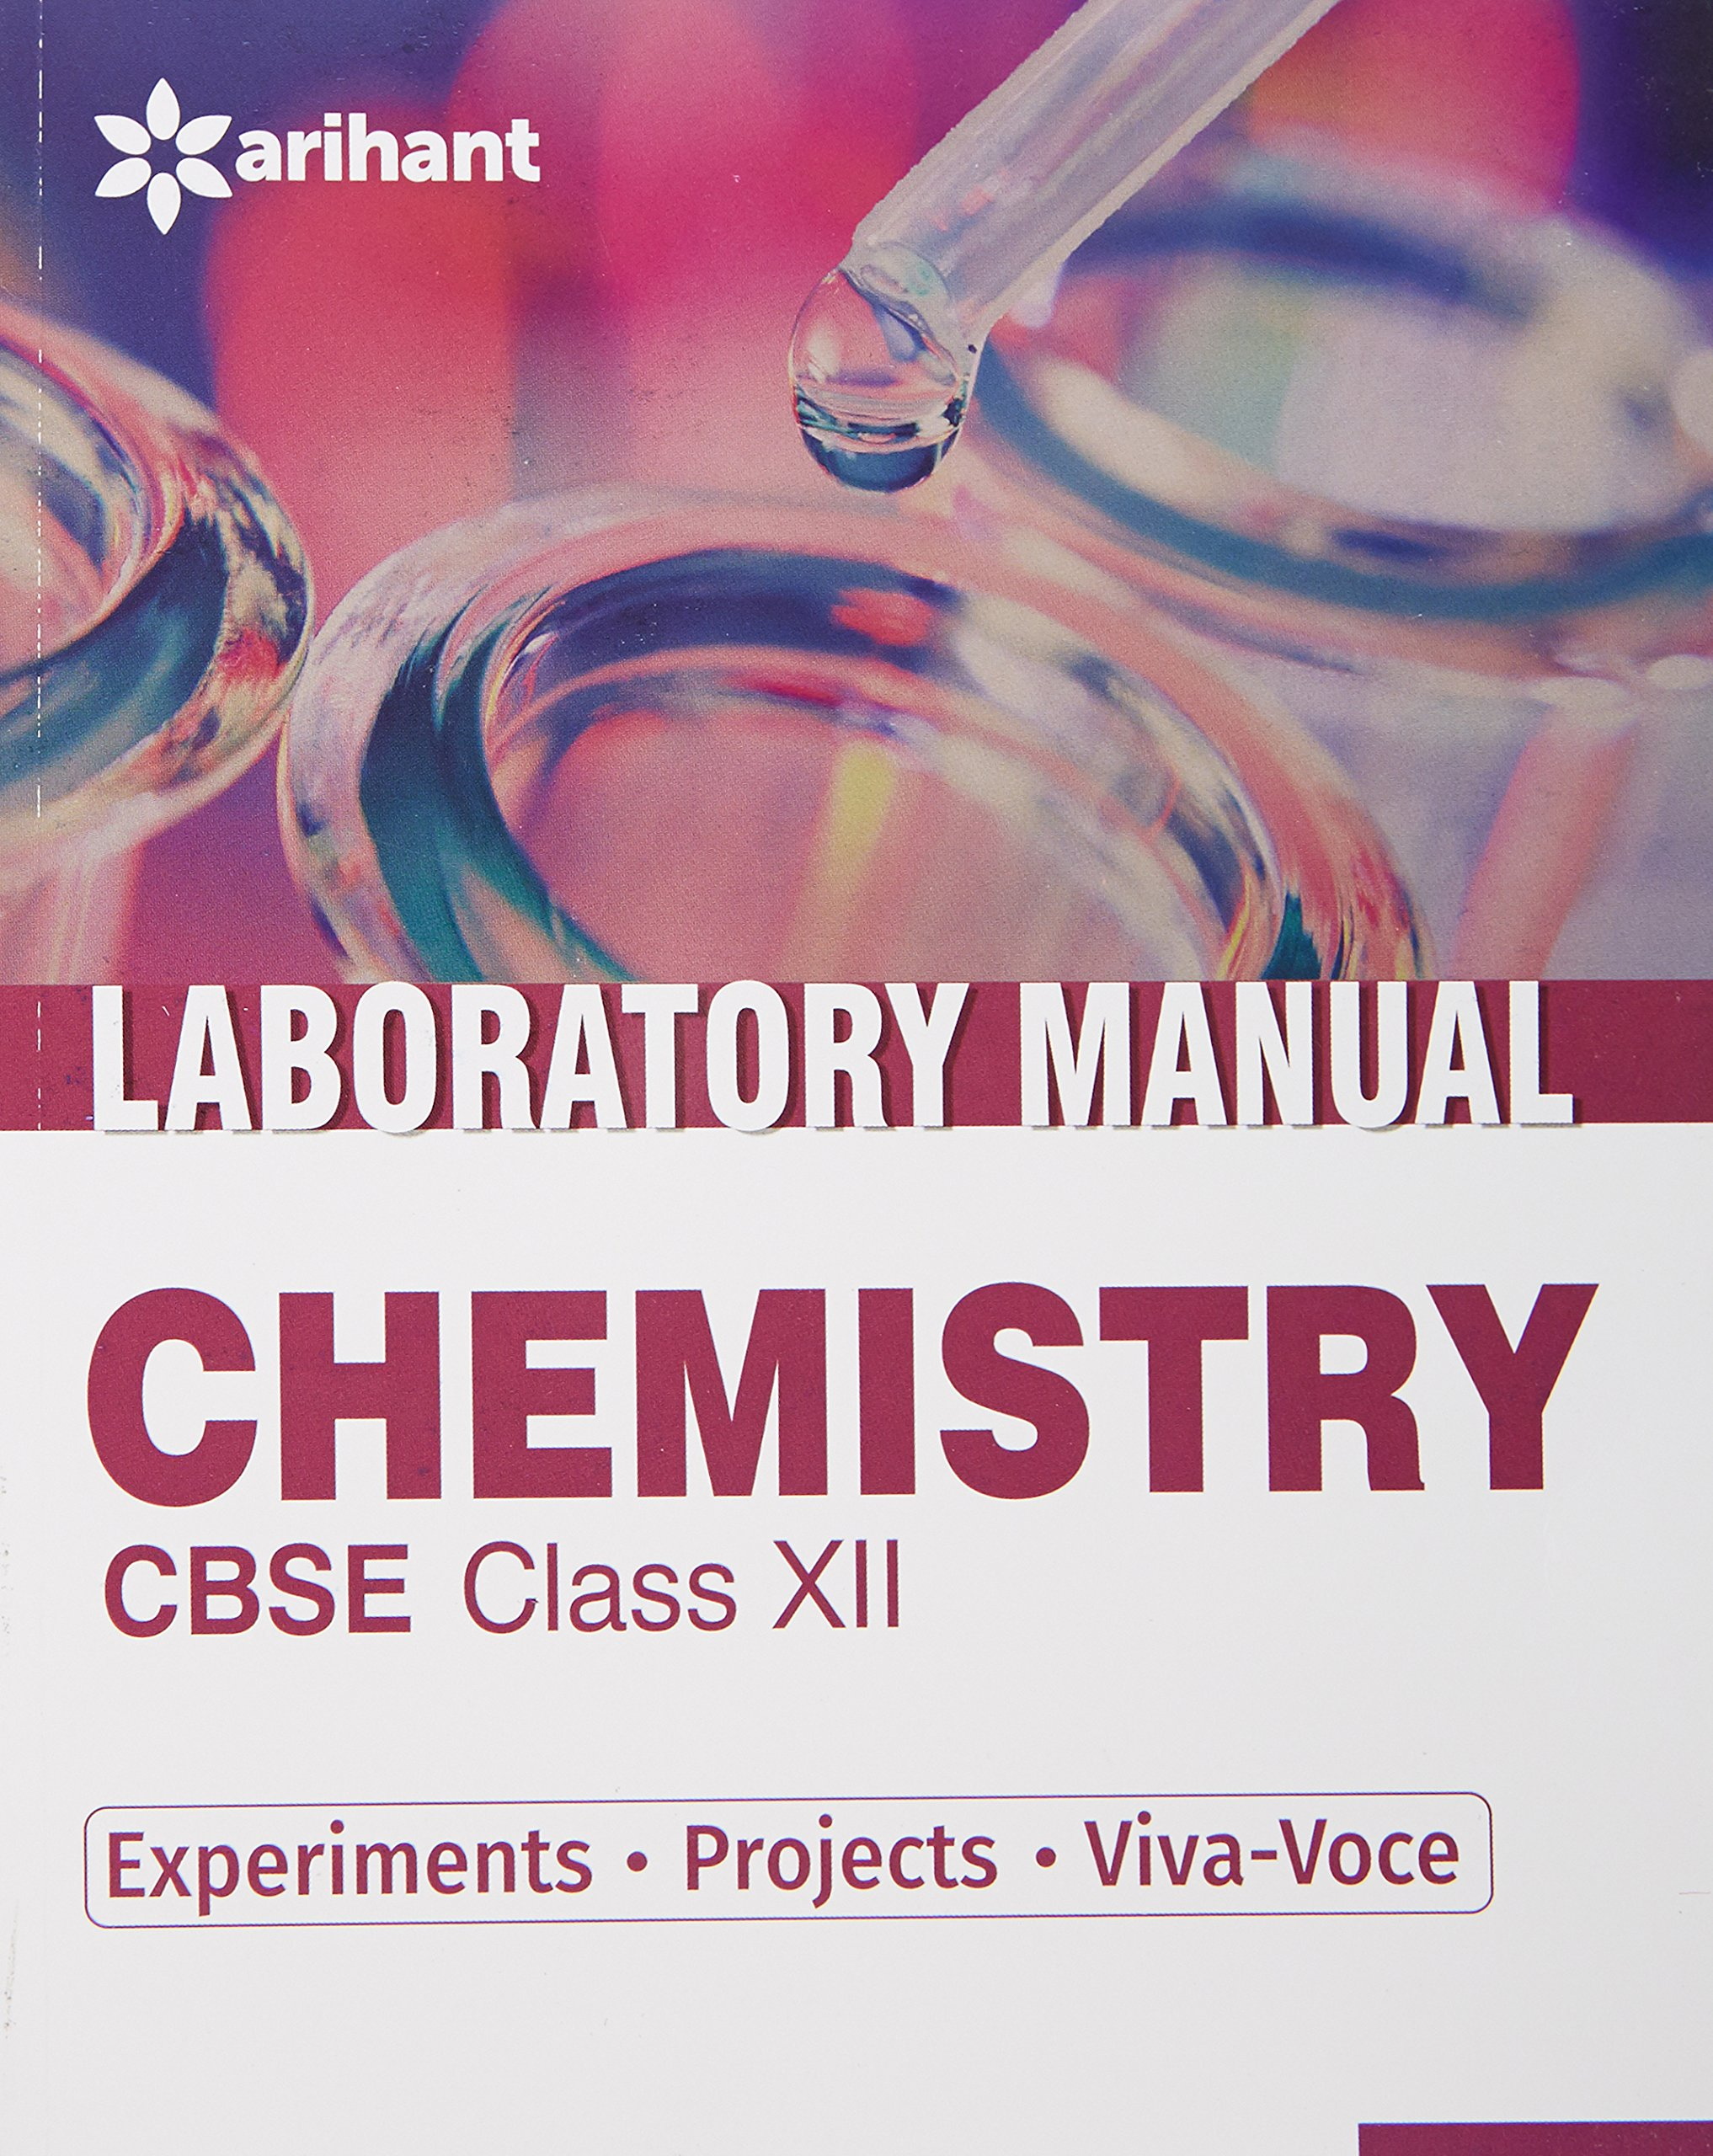 CBSE Laboratory Manual Chemistry Class 12th Experiments|Projects|Viva-Voce:  Amazon.in: Arihant Experts: Books